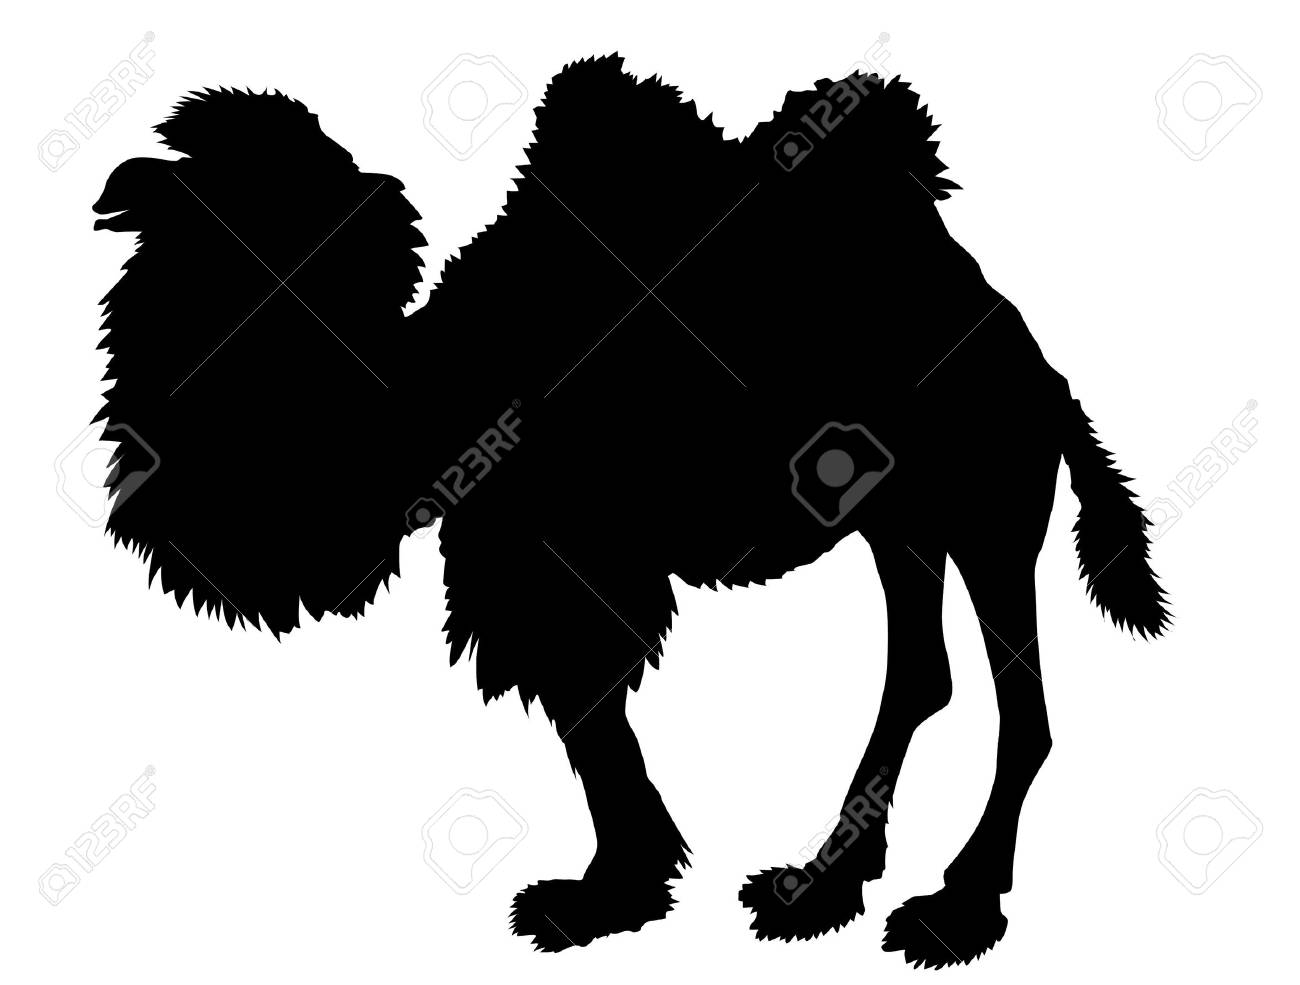 silhouette of the camel on white background Stock Vector - 7780133